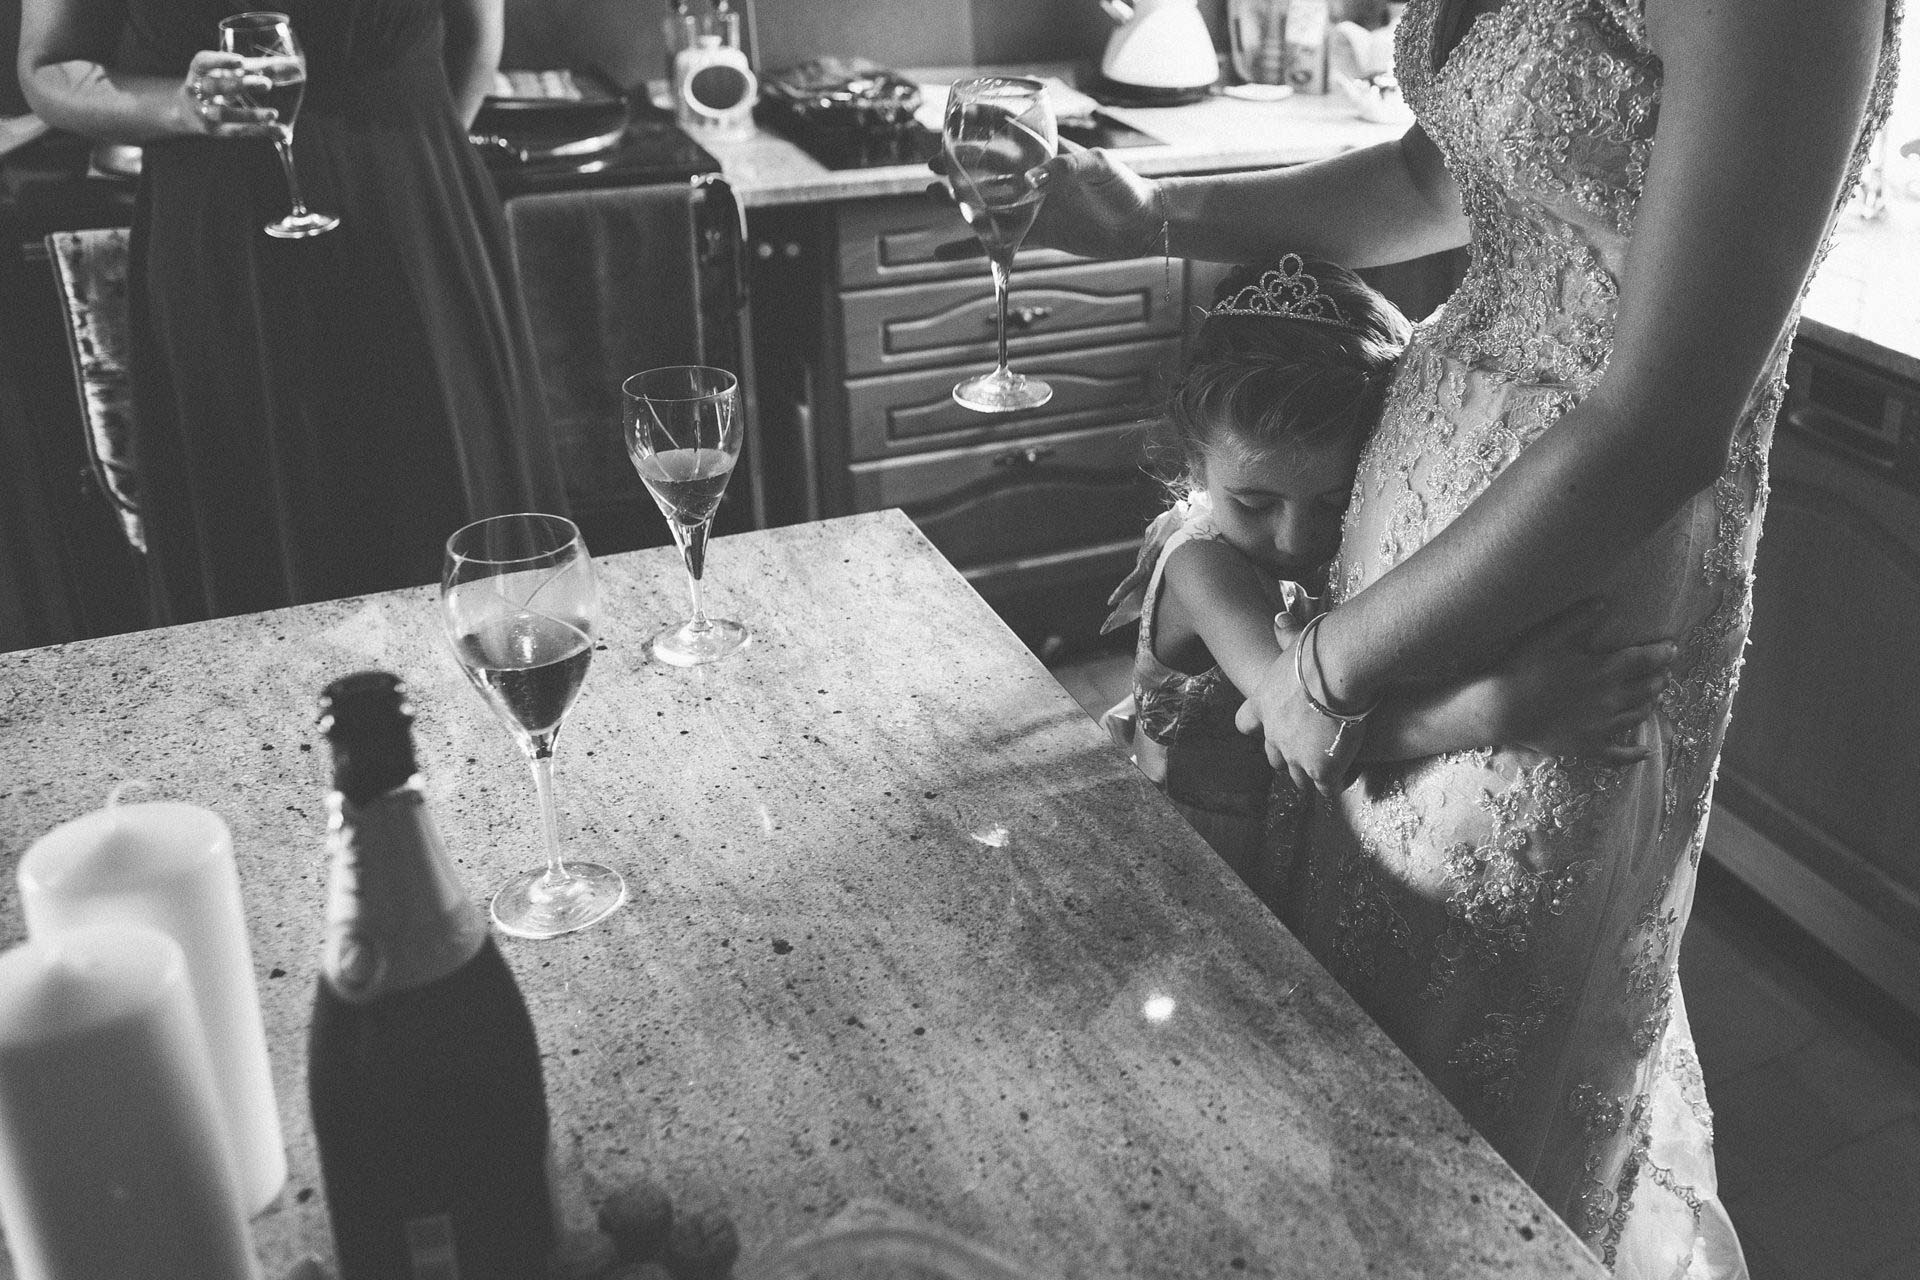 Best wedding photography 2016 - champagne glasses on kitchen table